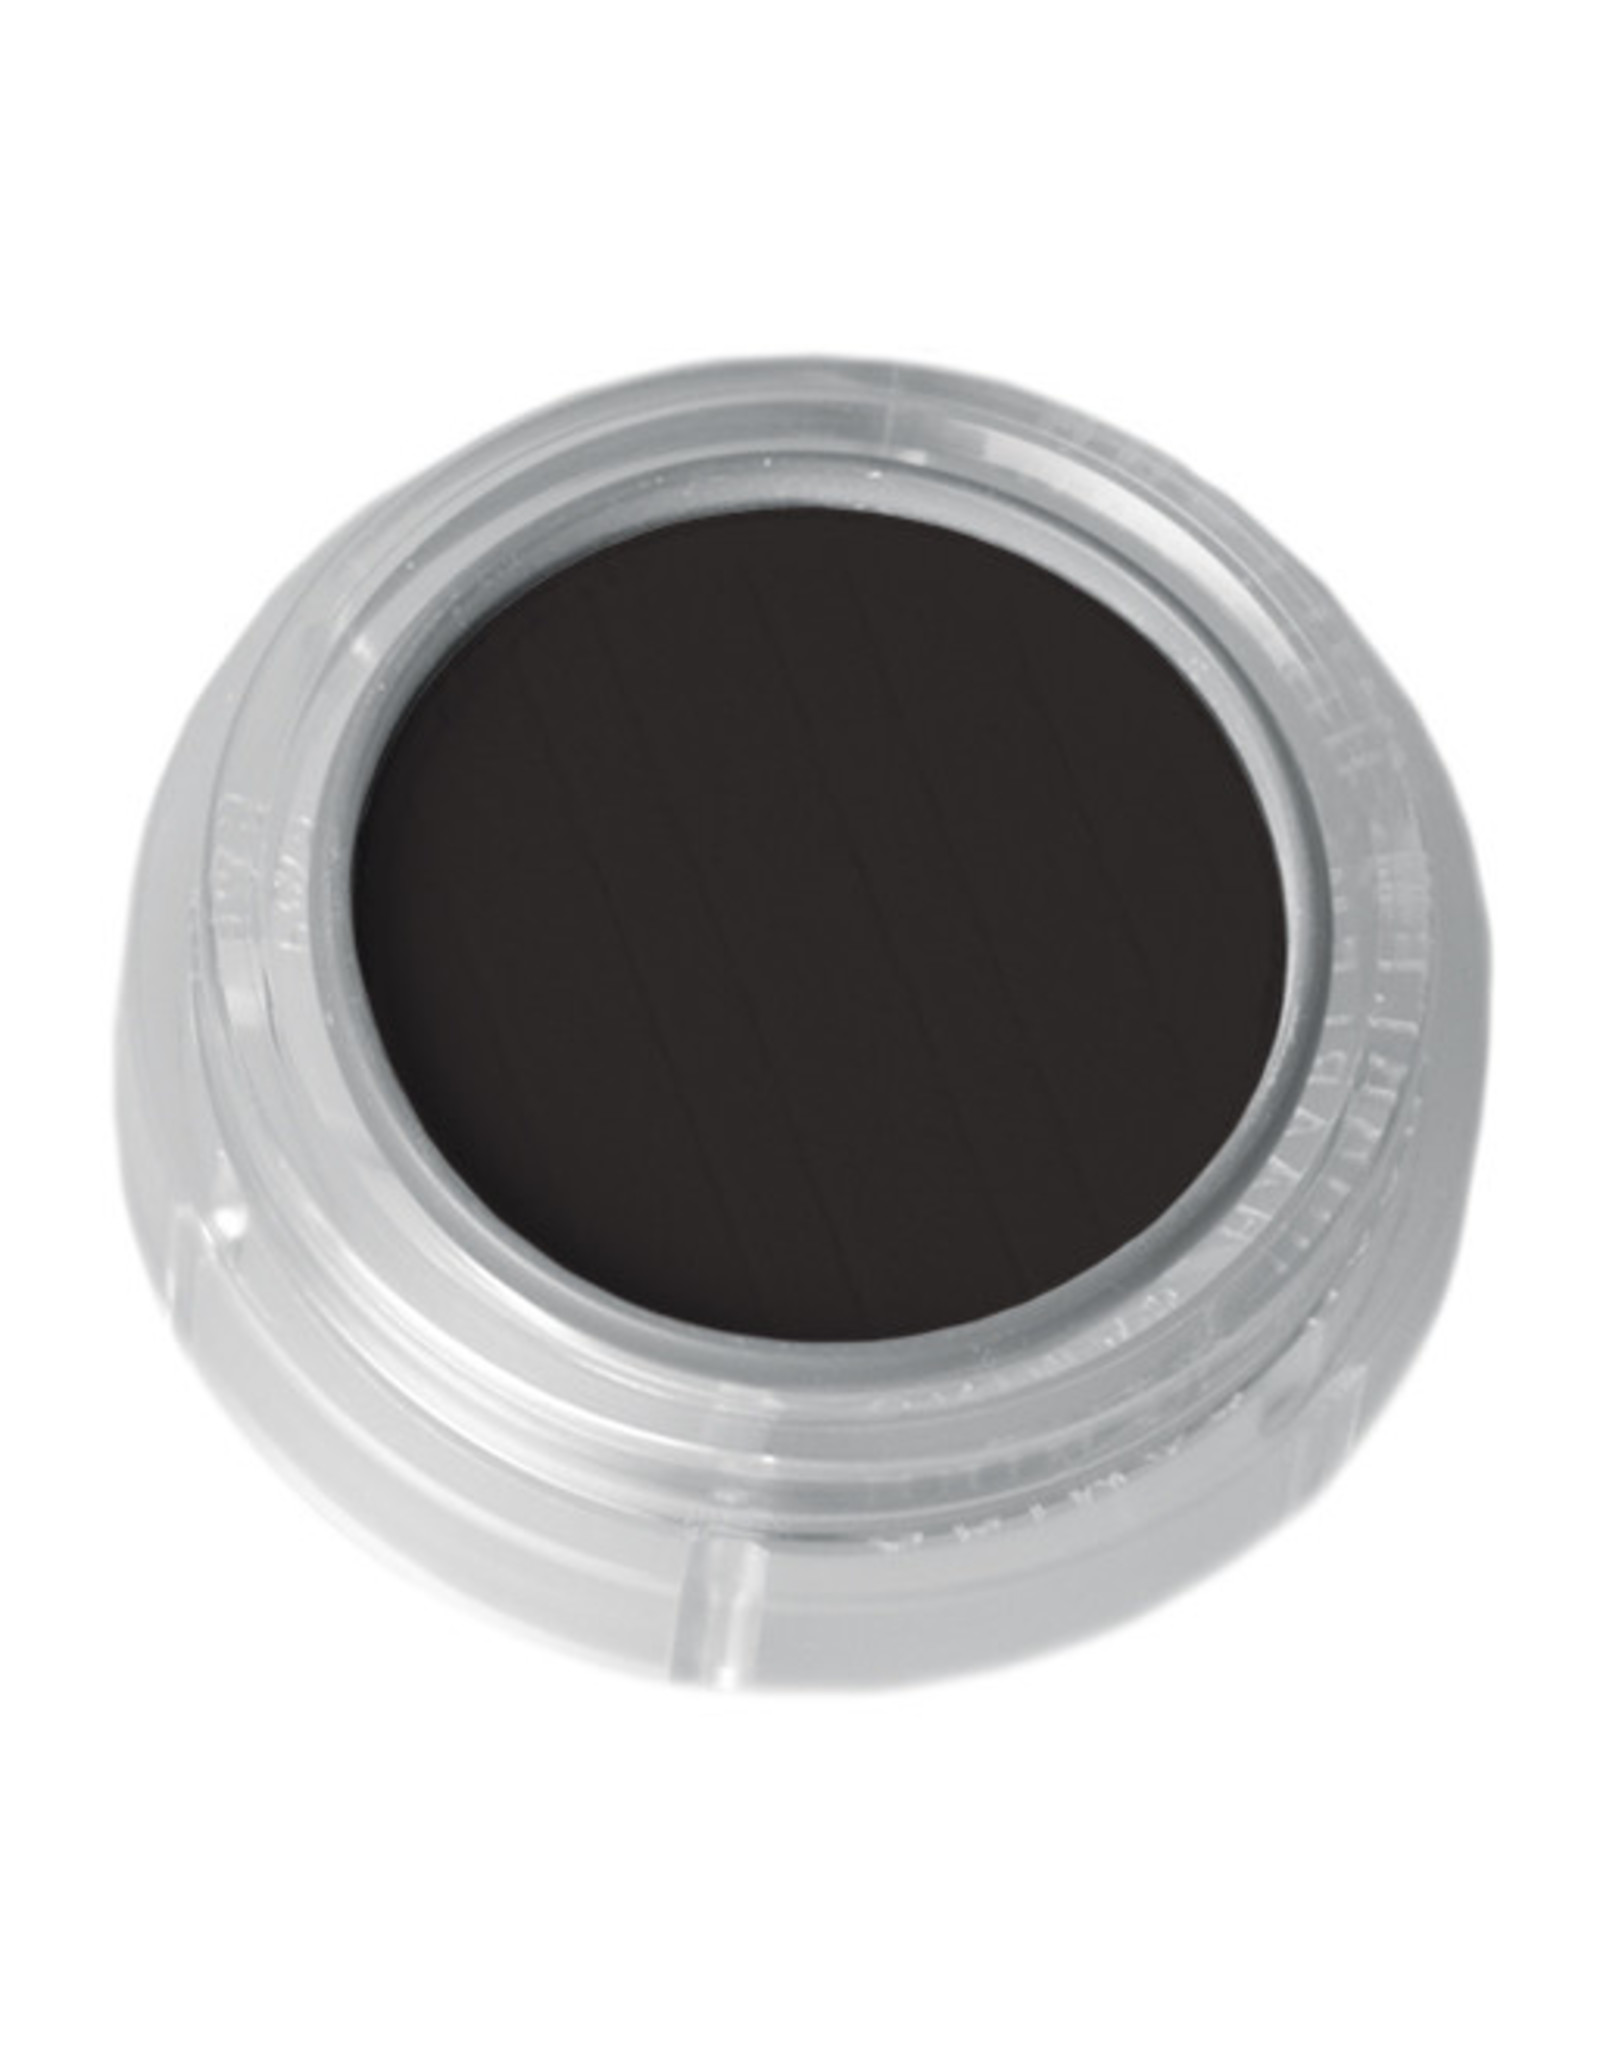 Grimas EYESHADOW/ROUGE 103 Donkergrijs A1 (2 g)